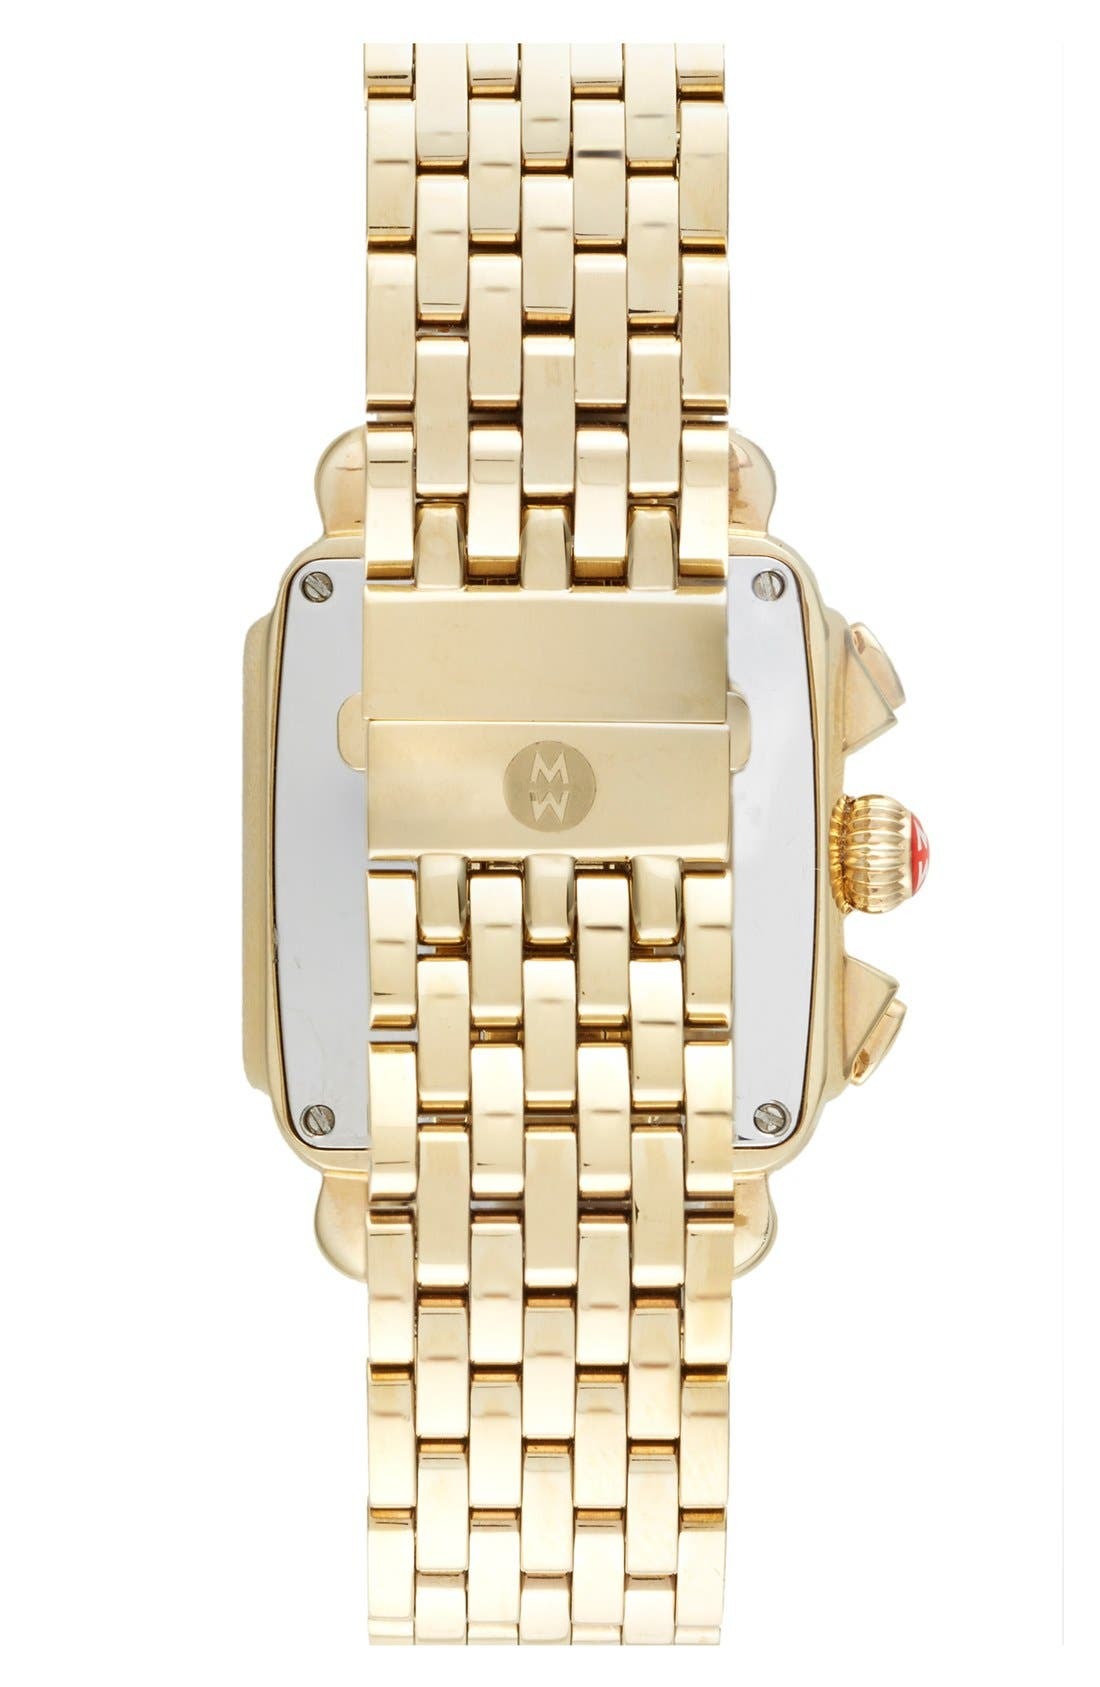 MICHELE, Deco Diamond Diamond Dial Gold Plated Watch Case, 33mm x 35mm, Alternate thumbnail 6, color, GOLD